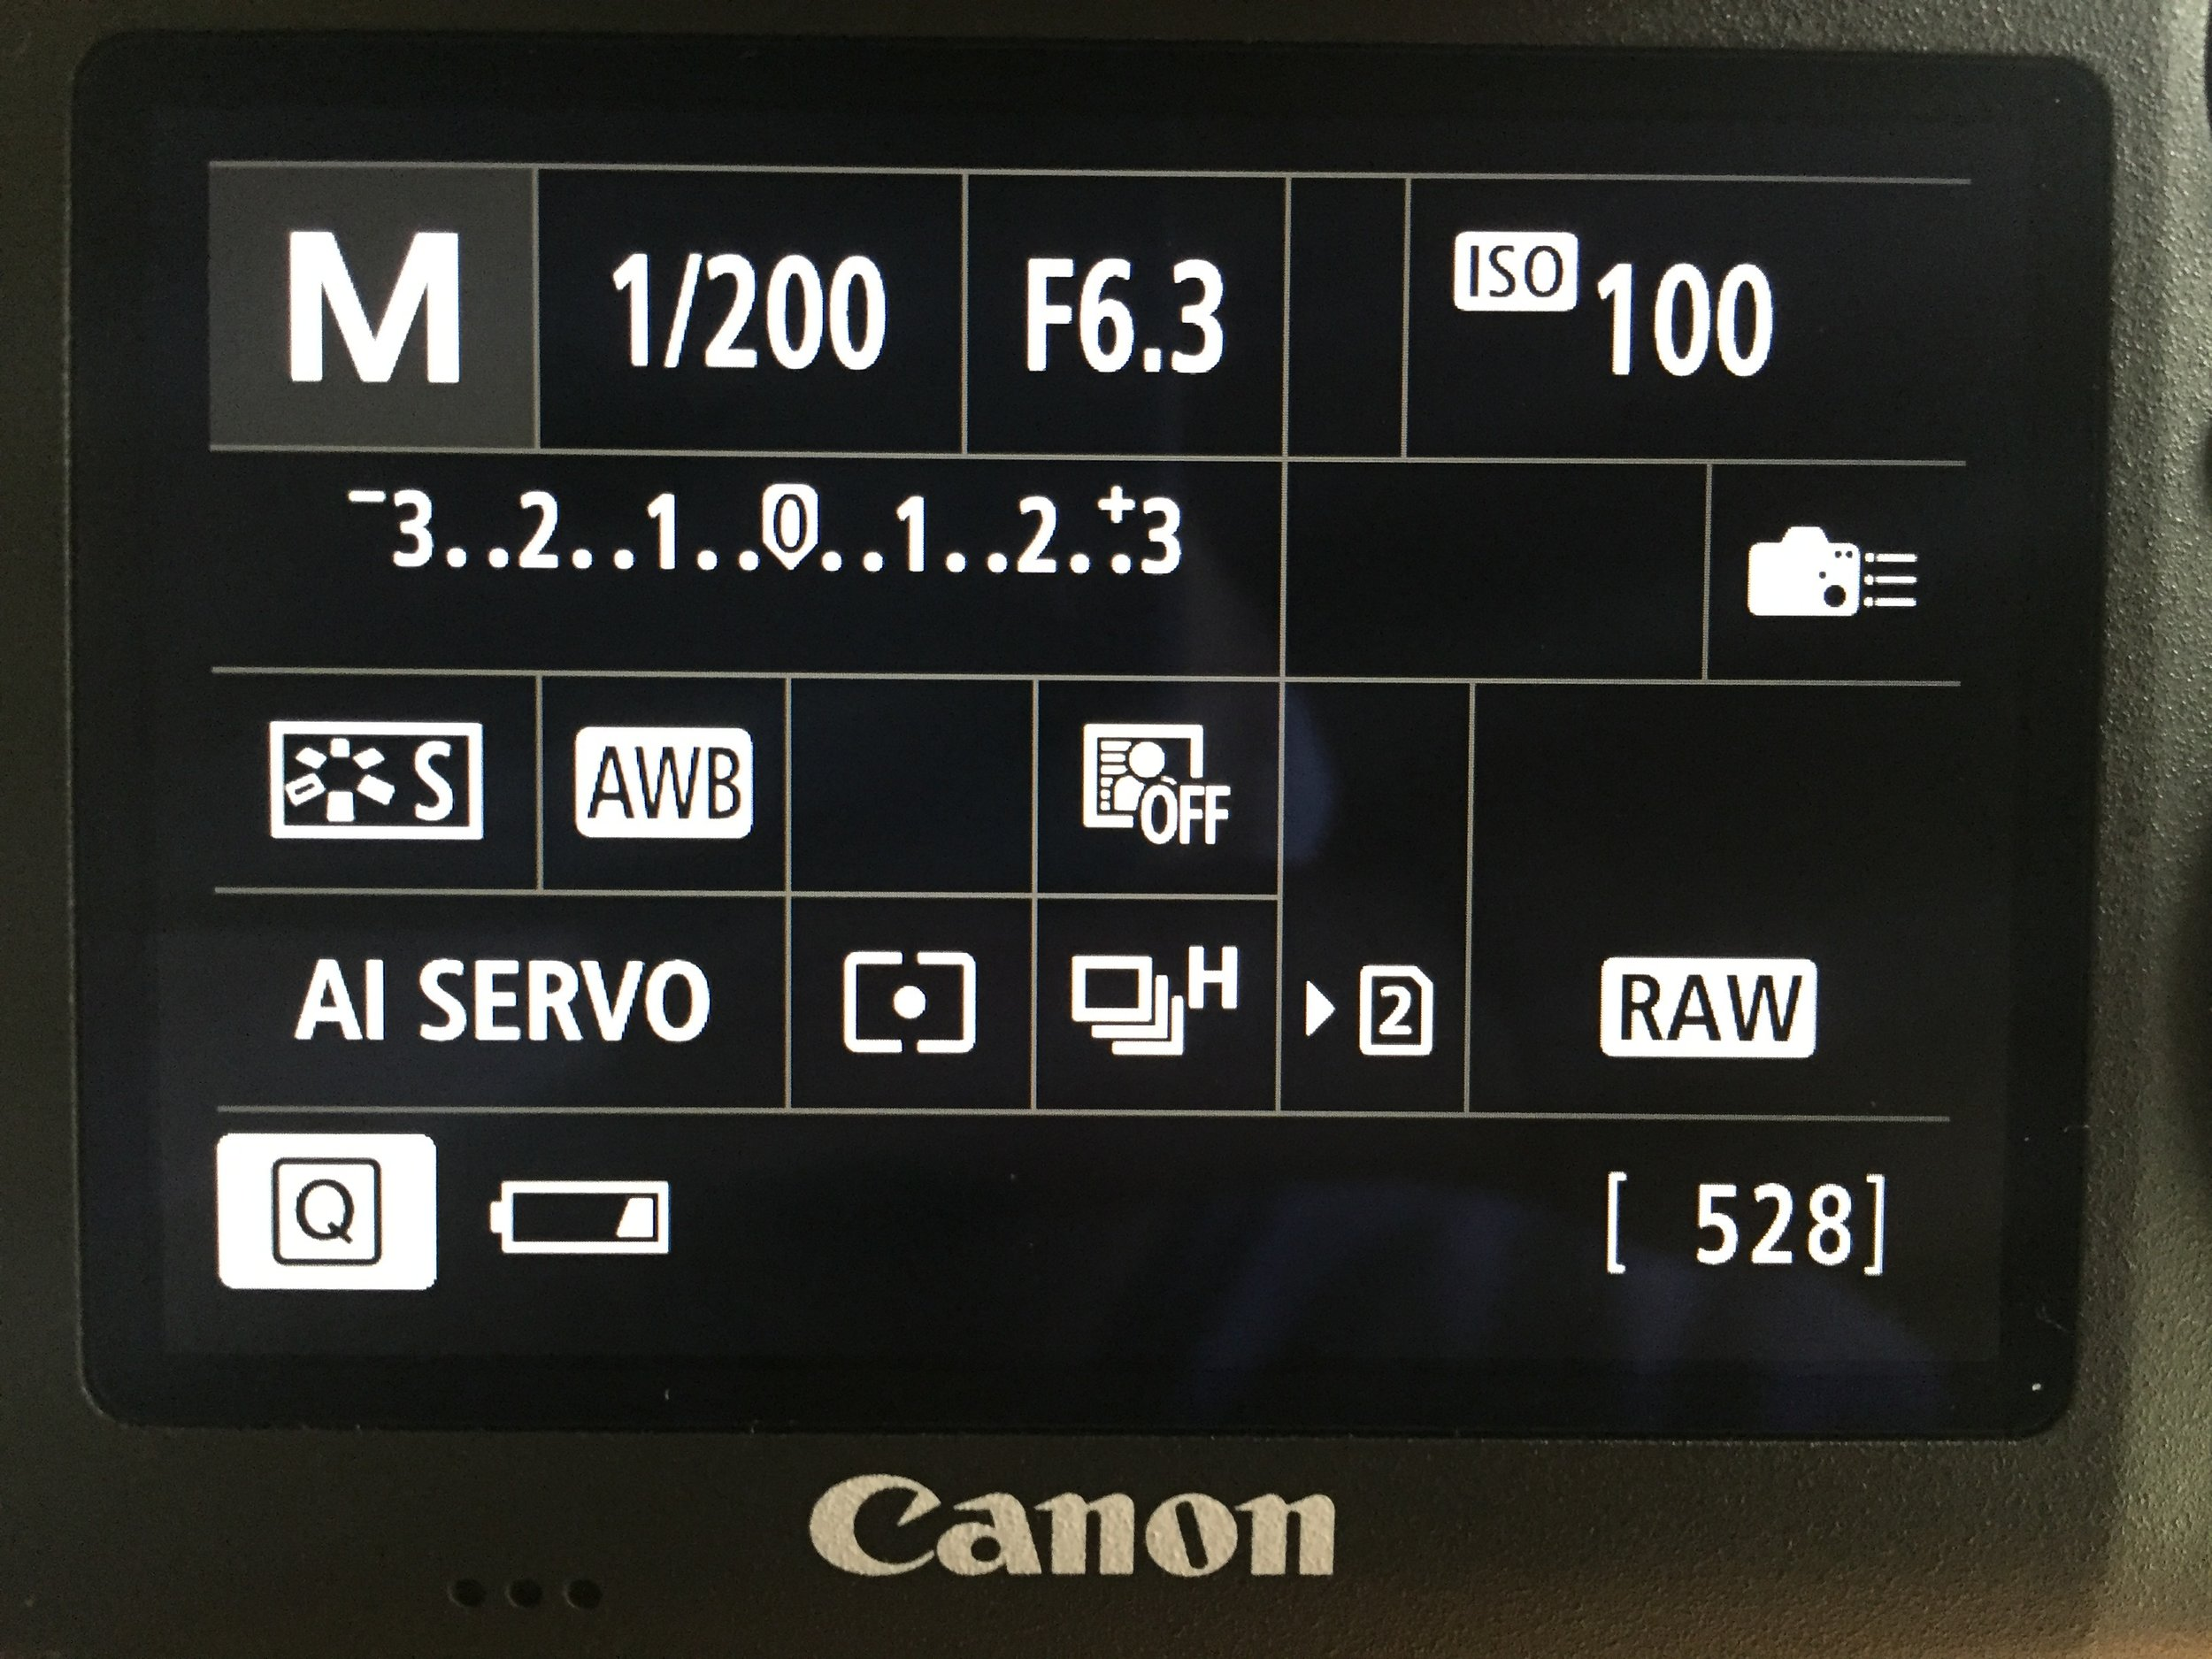 Quick control screen for shooting functions of a Canon camera. It contains the most important settings you need access to during a shoot.